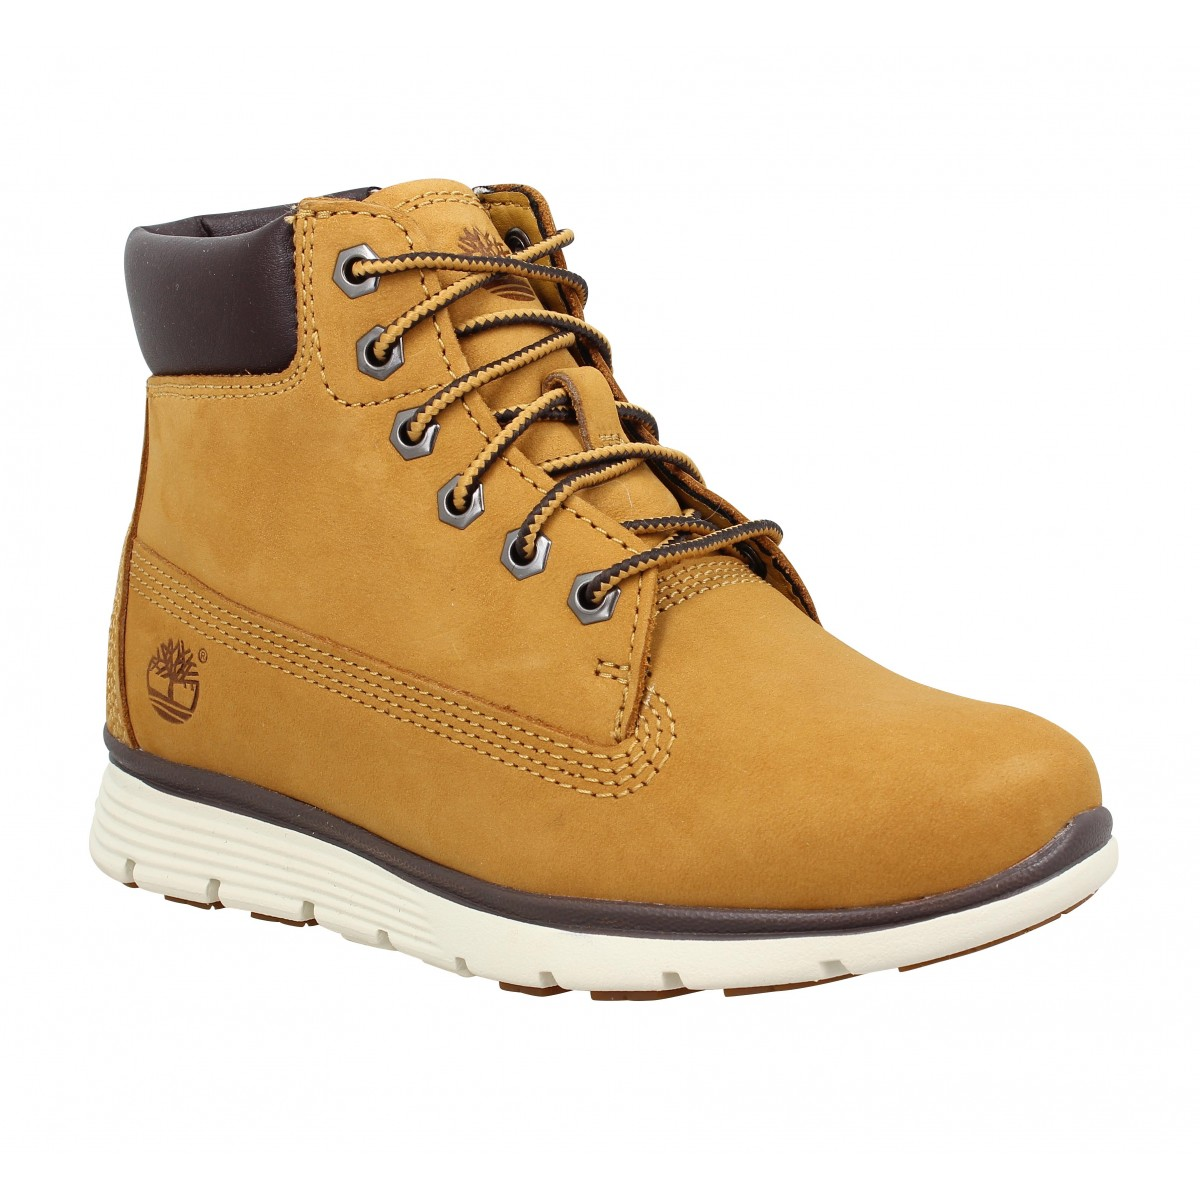 Baskets TIMBERLAND Killington 6in nubuck Enfant Ocre